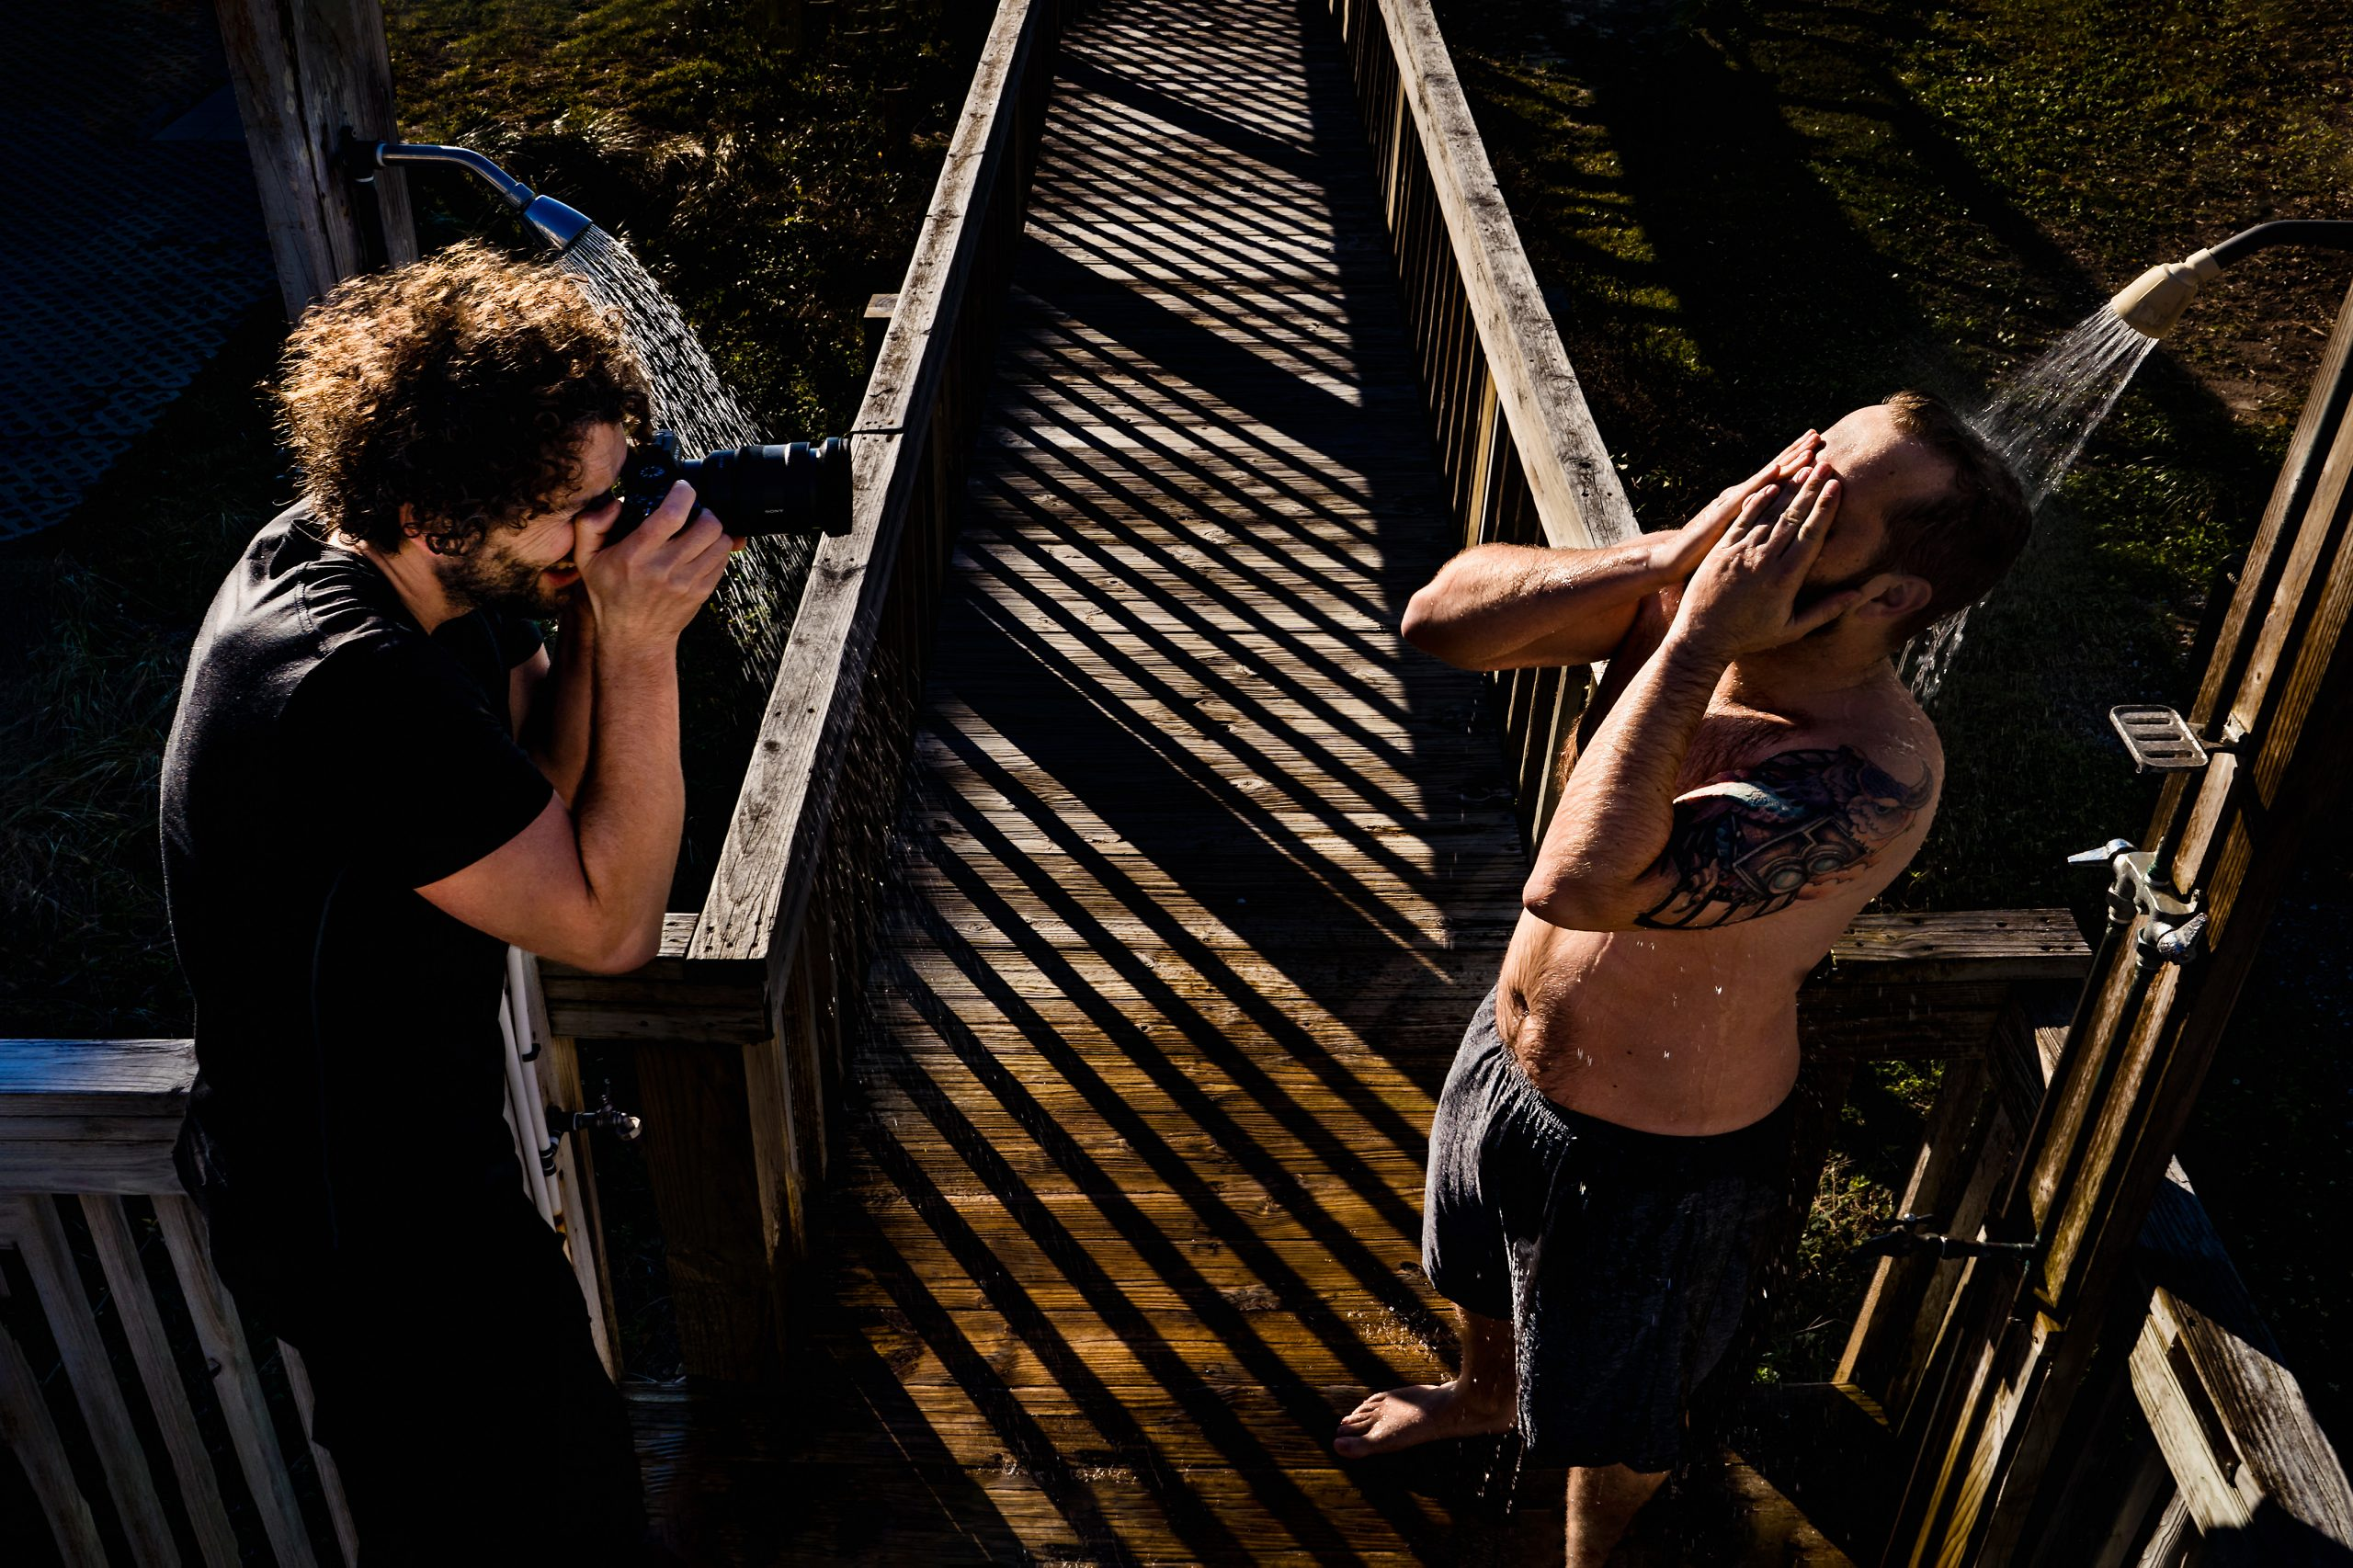 Lanny Mann photographs man showering outdoors.